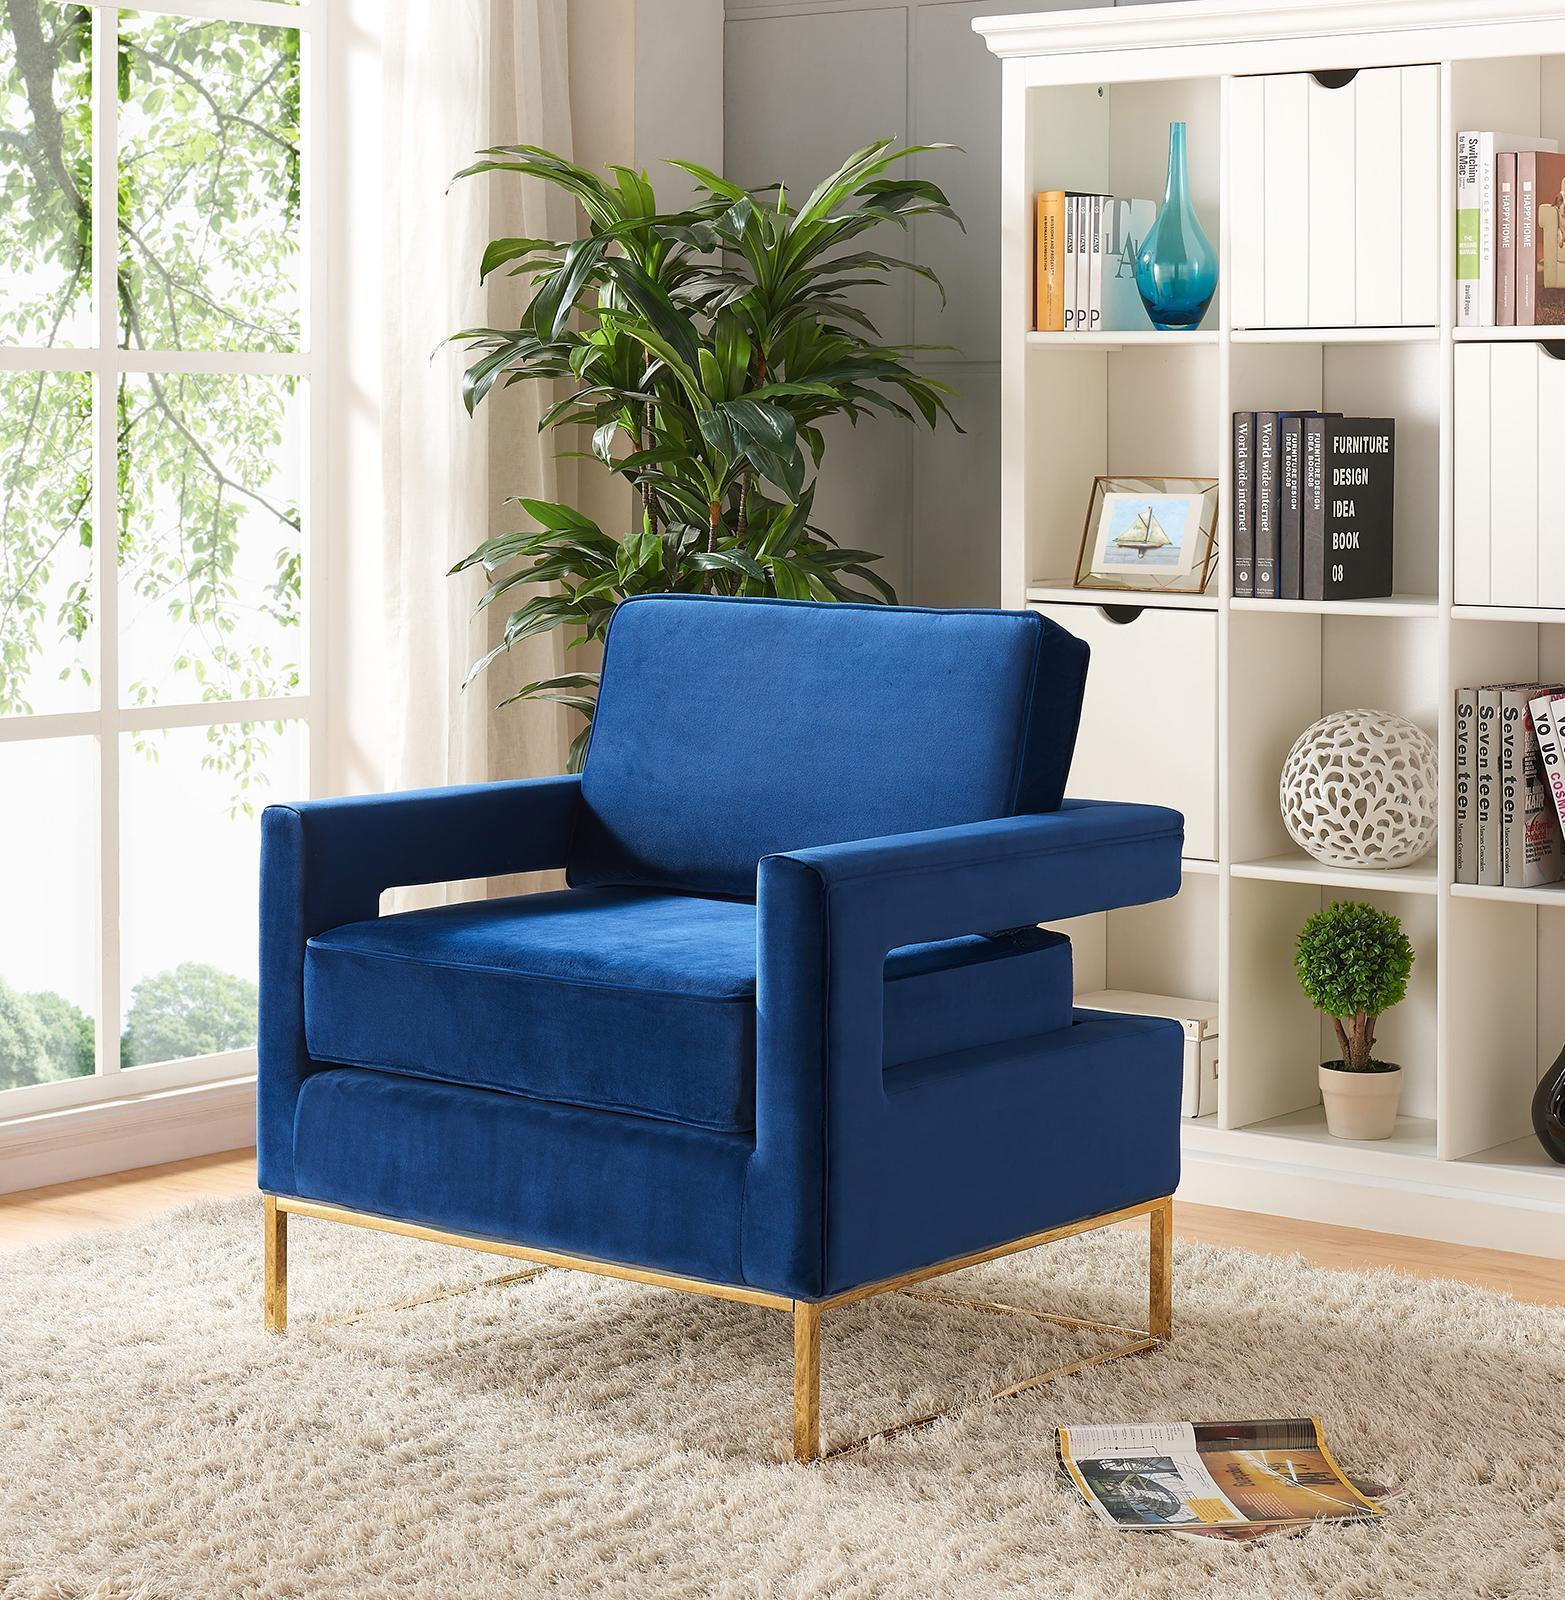 Meridian Furniture Noah Contemporary Navy Blue Velvet Accent Chair